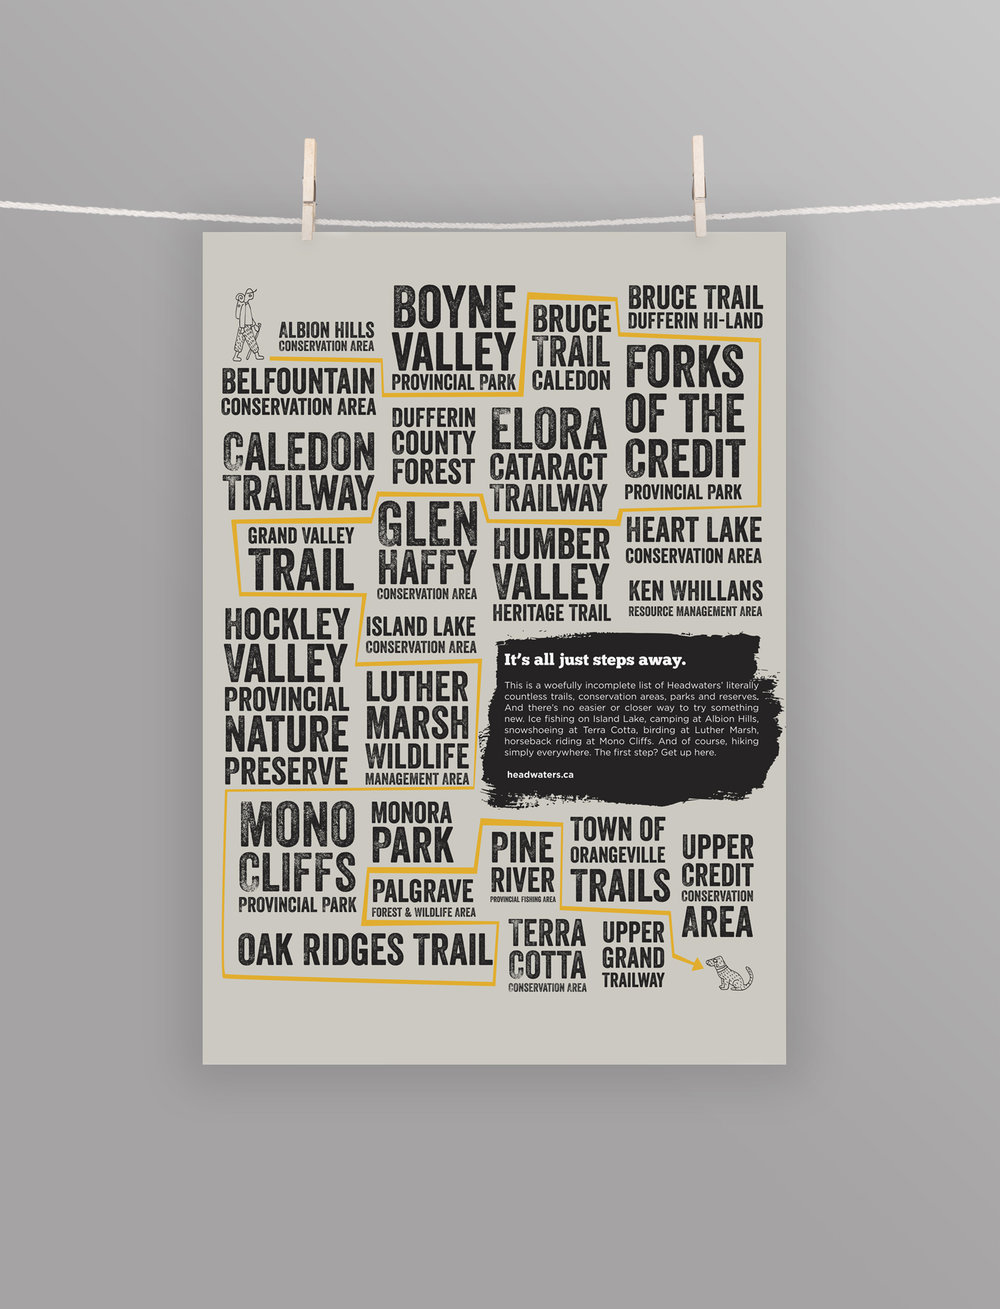 A typographic poster featuring the best sights to see in Headwaters. Including Forks of the Credit, Heart Lake Conversation Area, Hockley Vallery Provincial Nature Preserve, Monora Park and more! Great hiking spots.